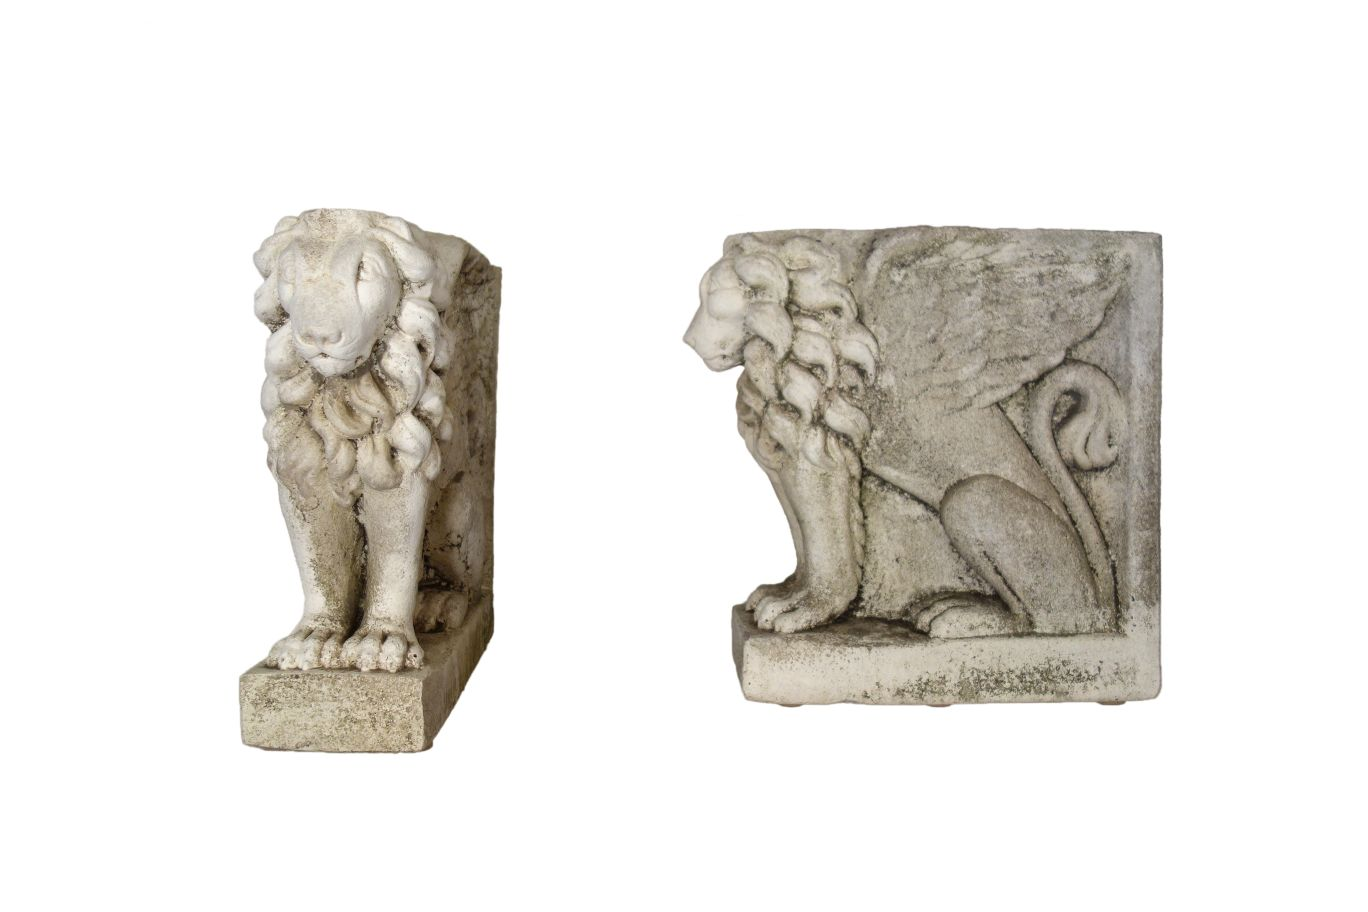 Antique Italian Pair of Winged Lions Statuary Bases from Lake Como Circa 1910